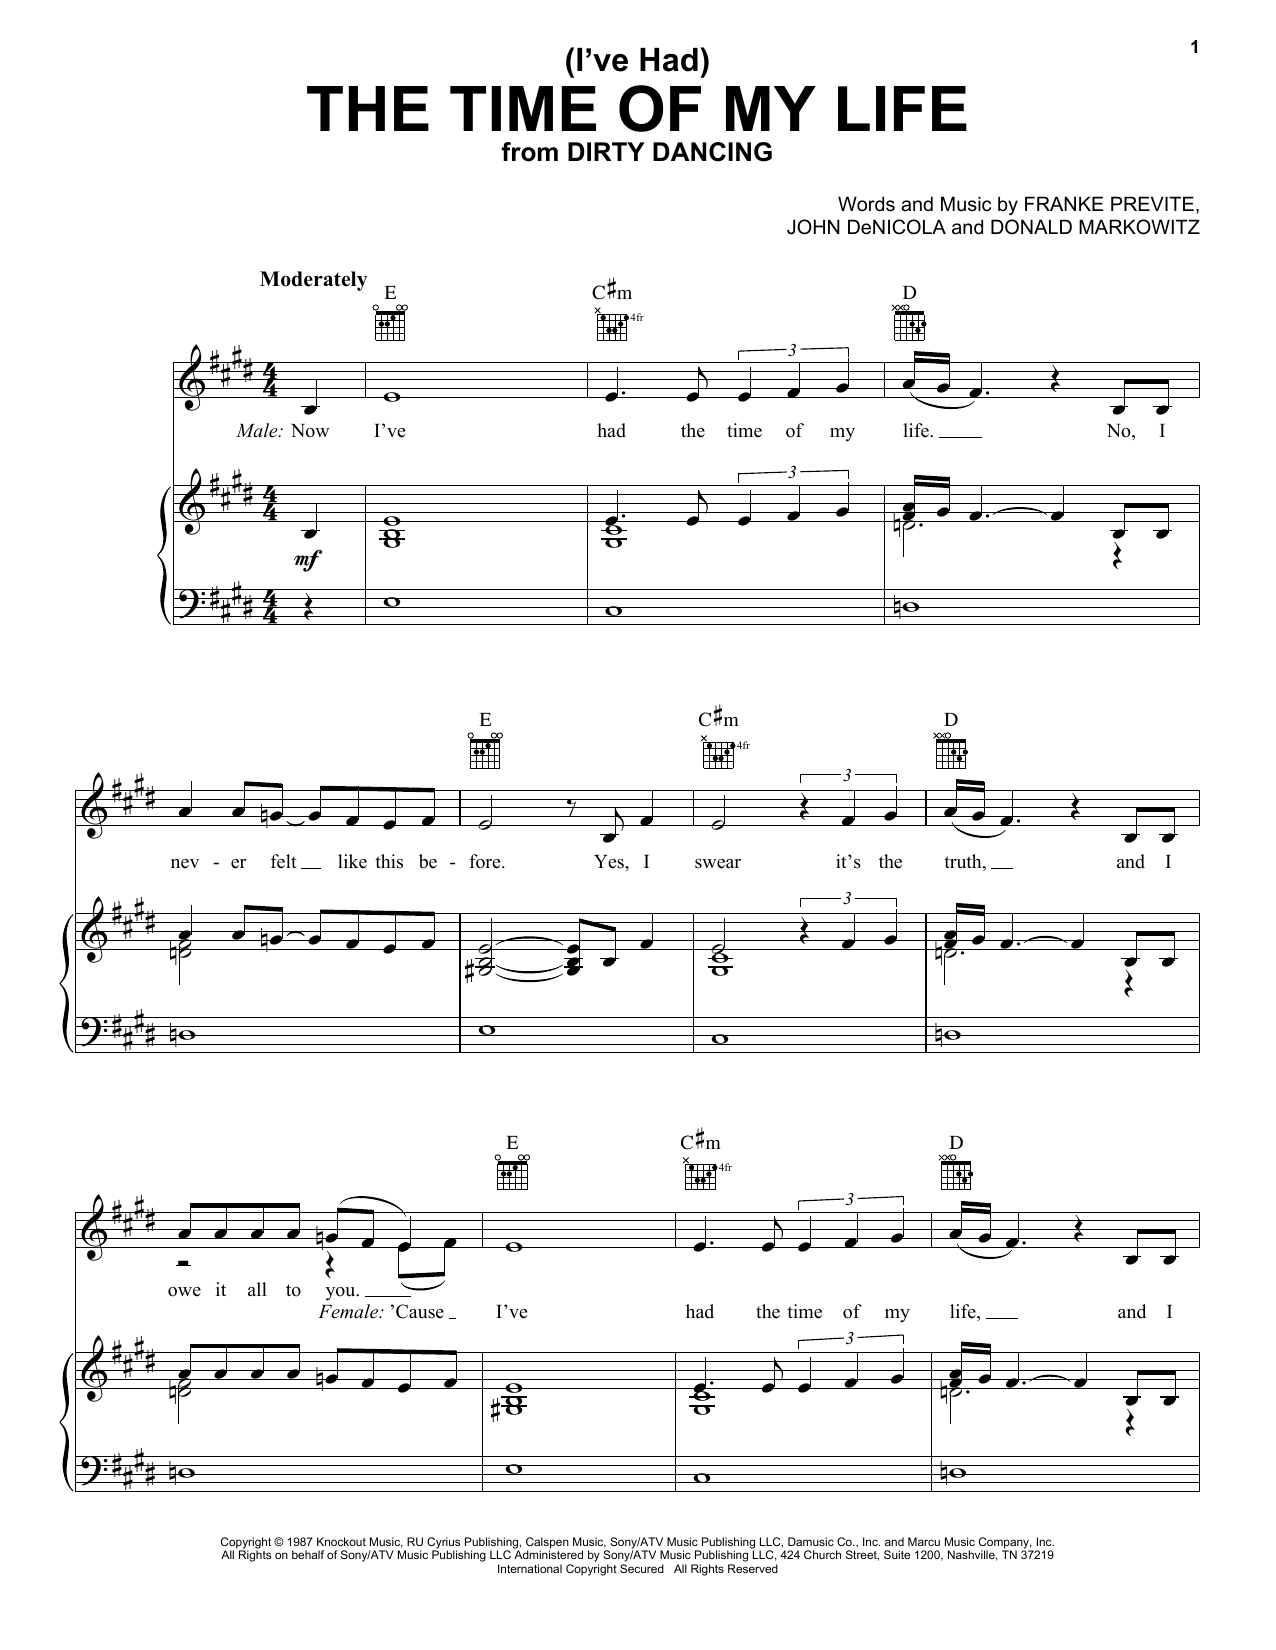 Bill Medley and Jennifer Warnes (I've Had) The Time Of My Life sheet music notes and chords